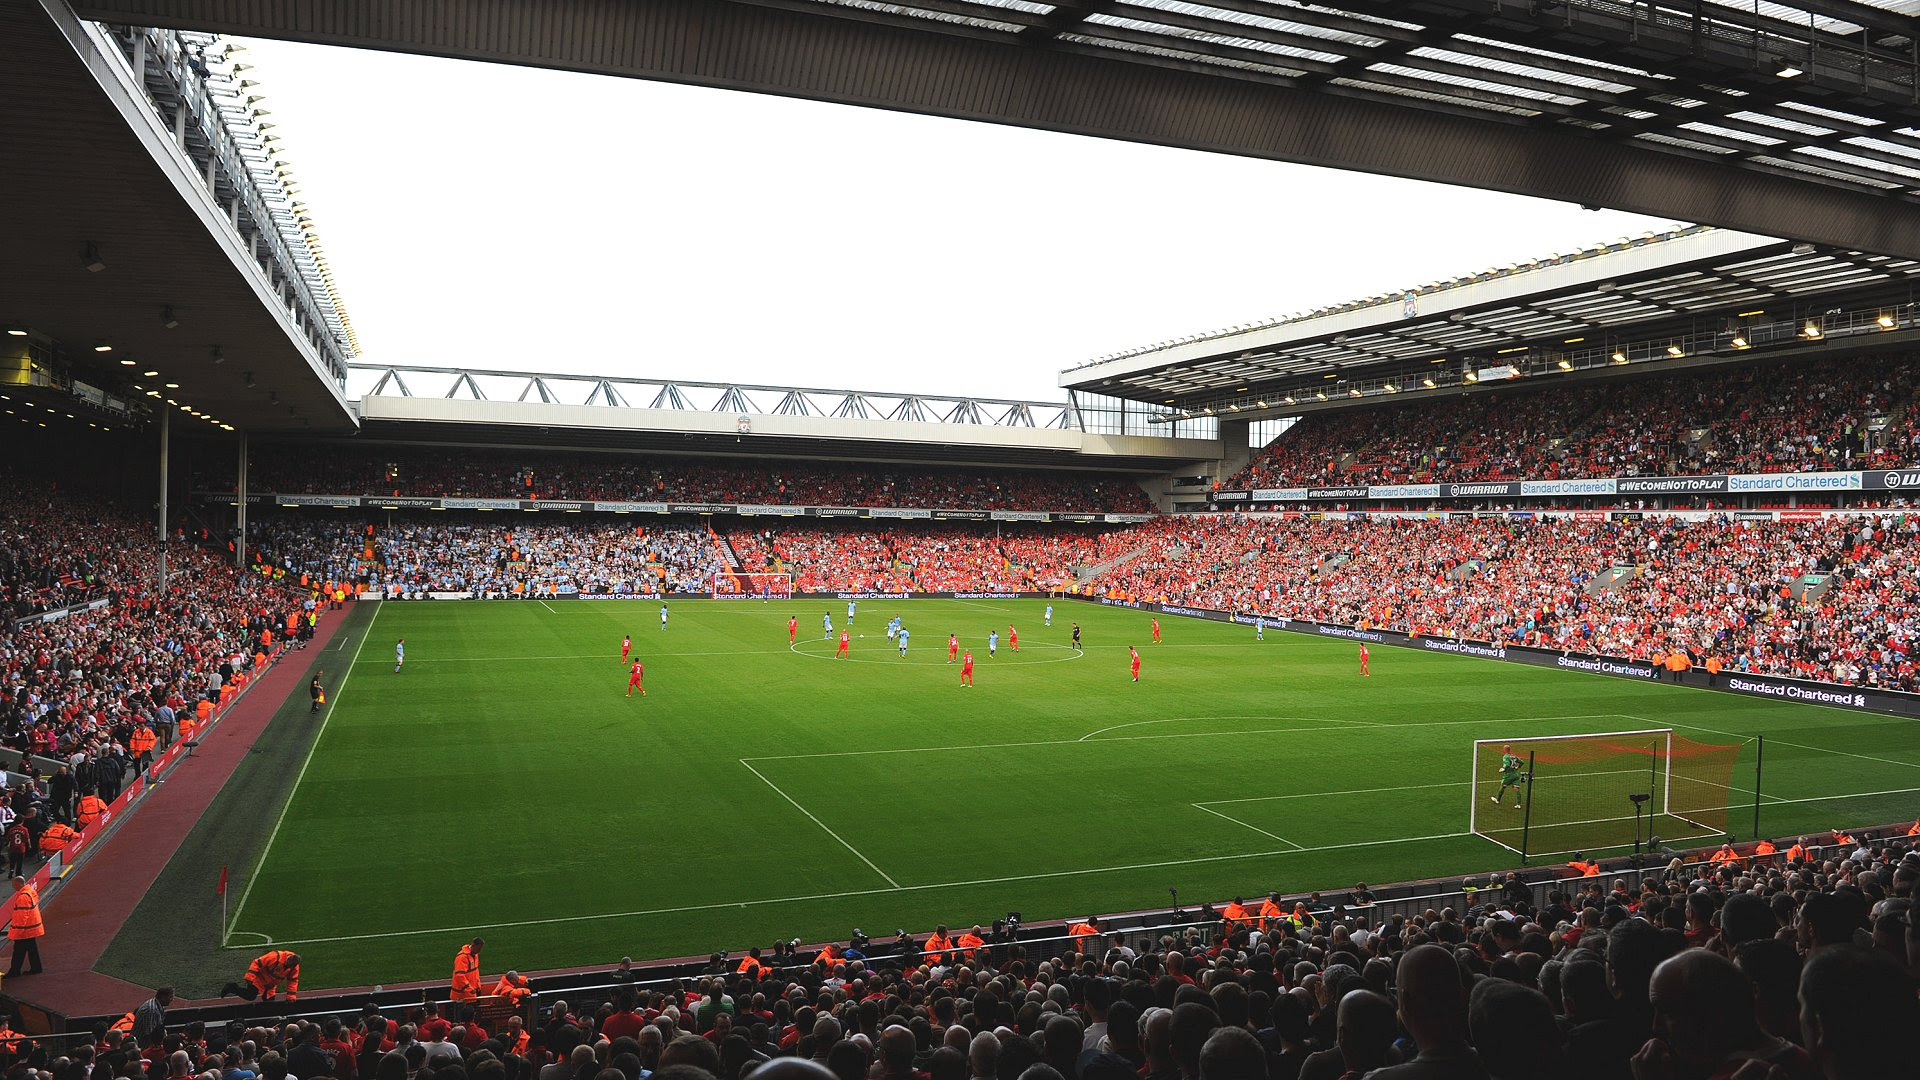 Liverpool F.C. (Football Club) of the Barclay's Premier League